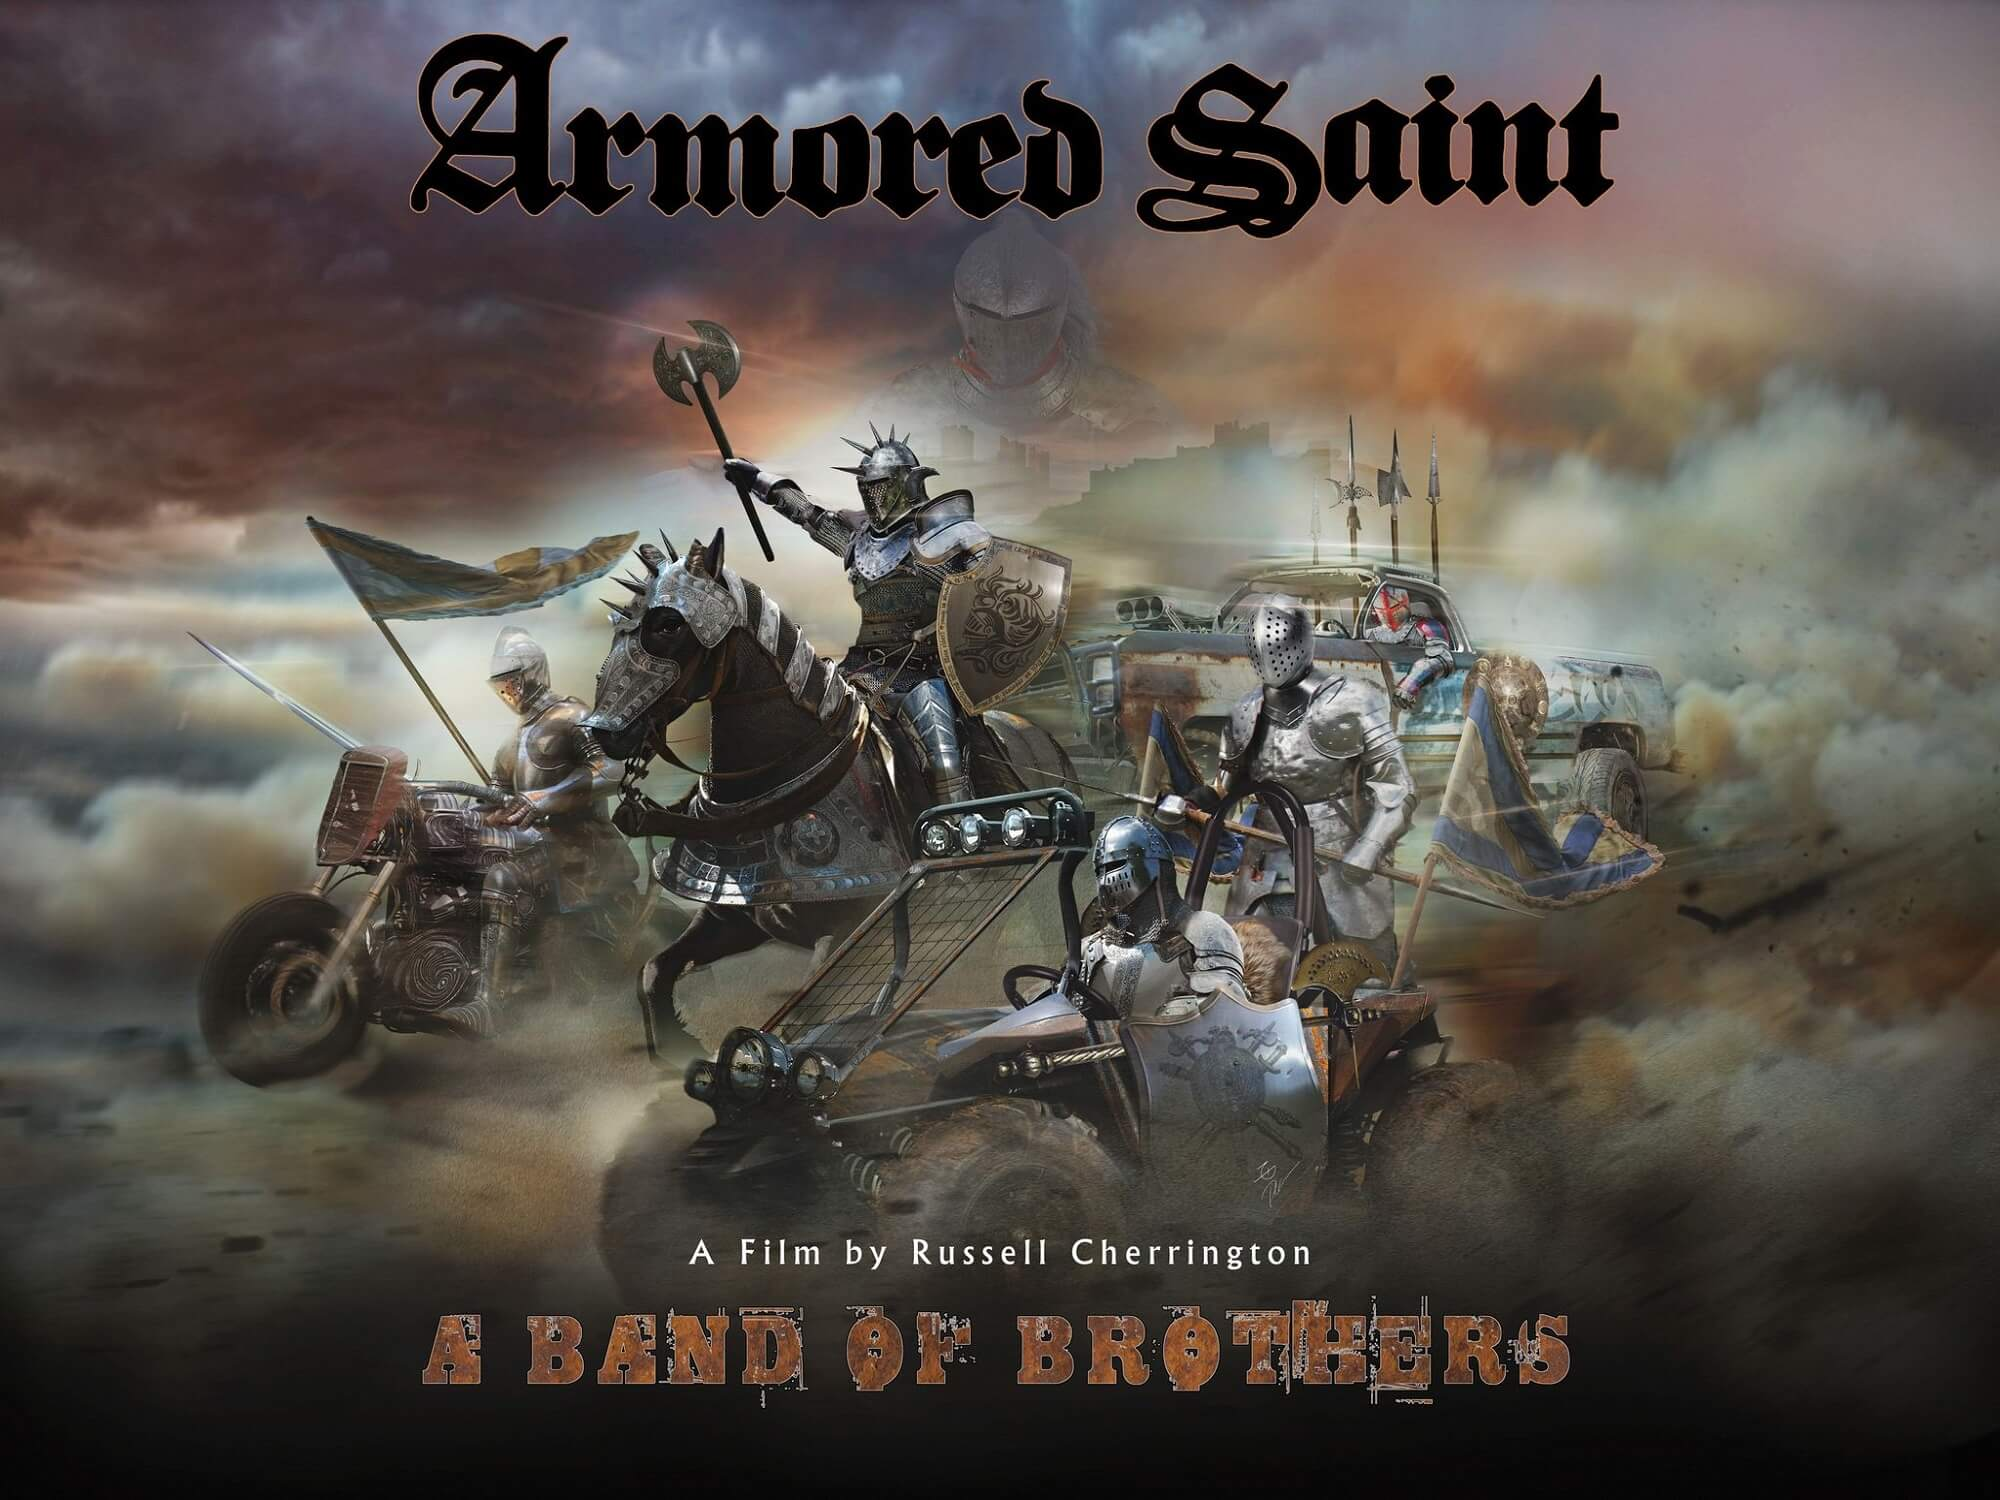 Illustration for the movie Armored Saint: A Band of Brothers